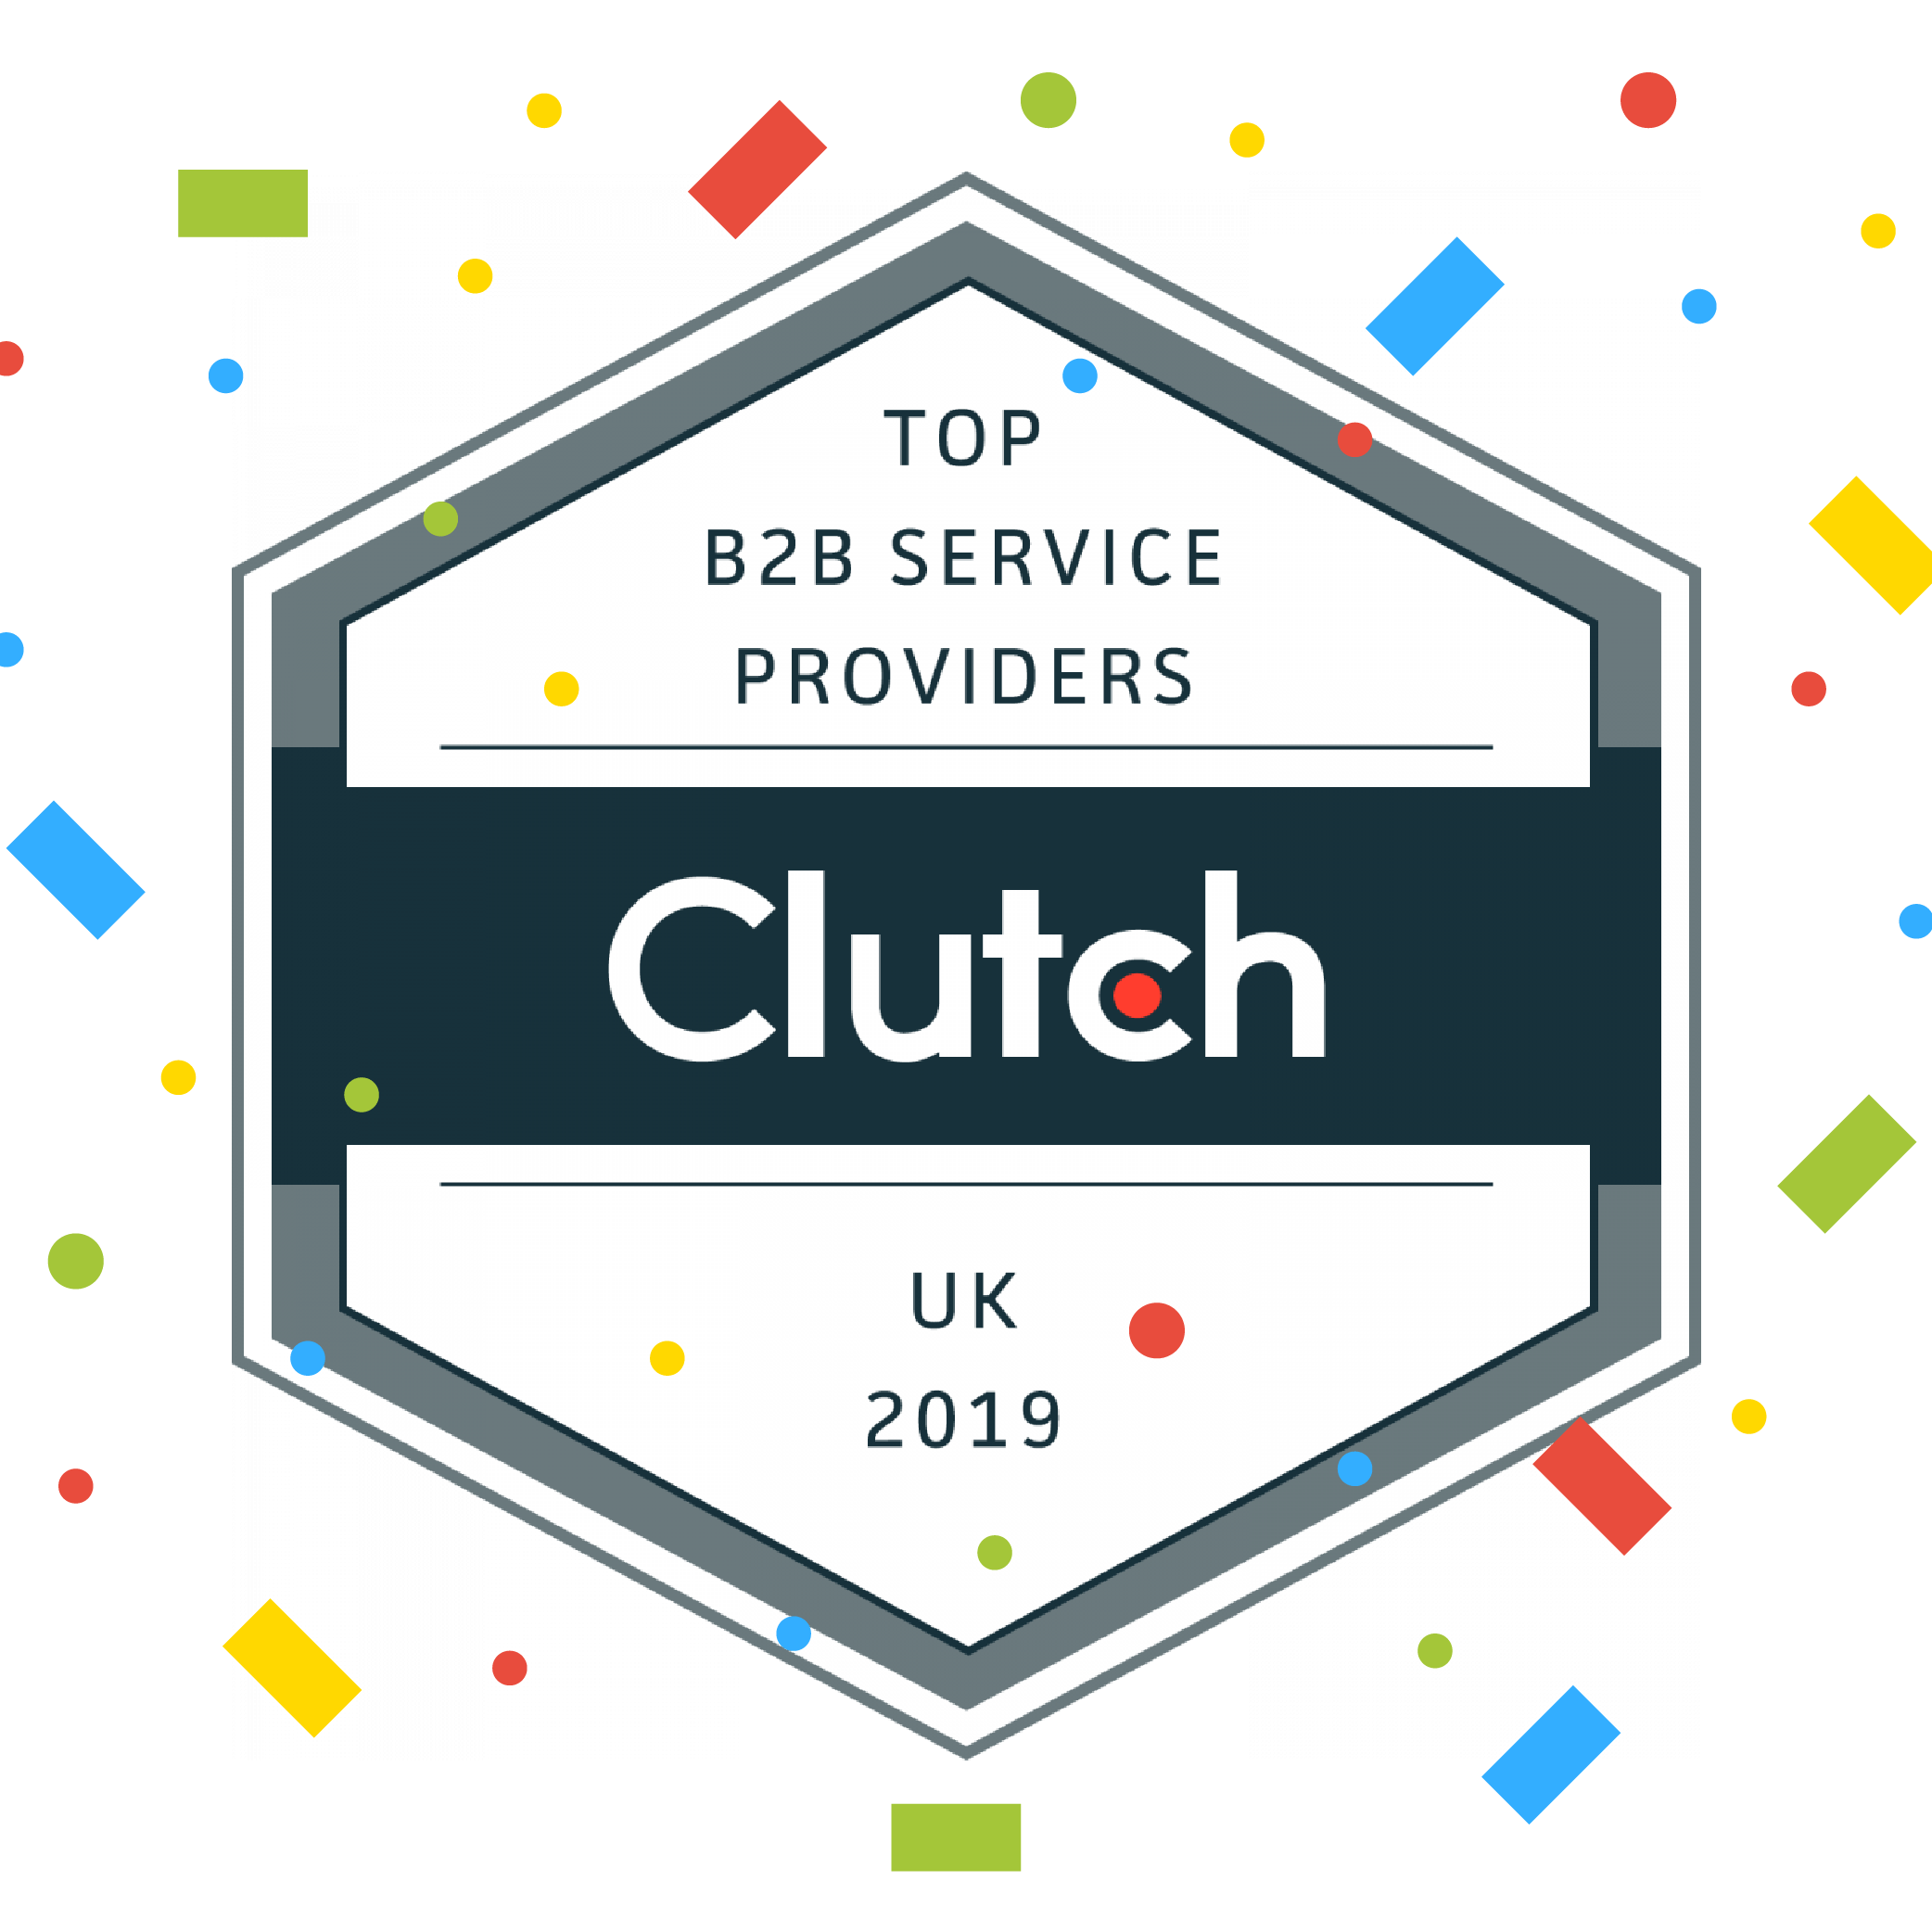 Cleveroad is one of the top B2B service provider in UK 2019